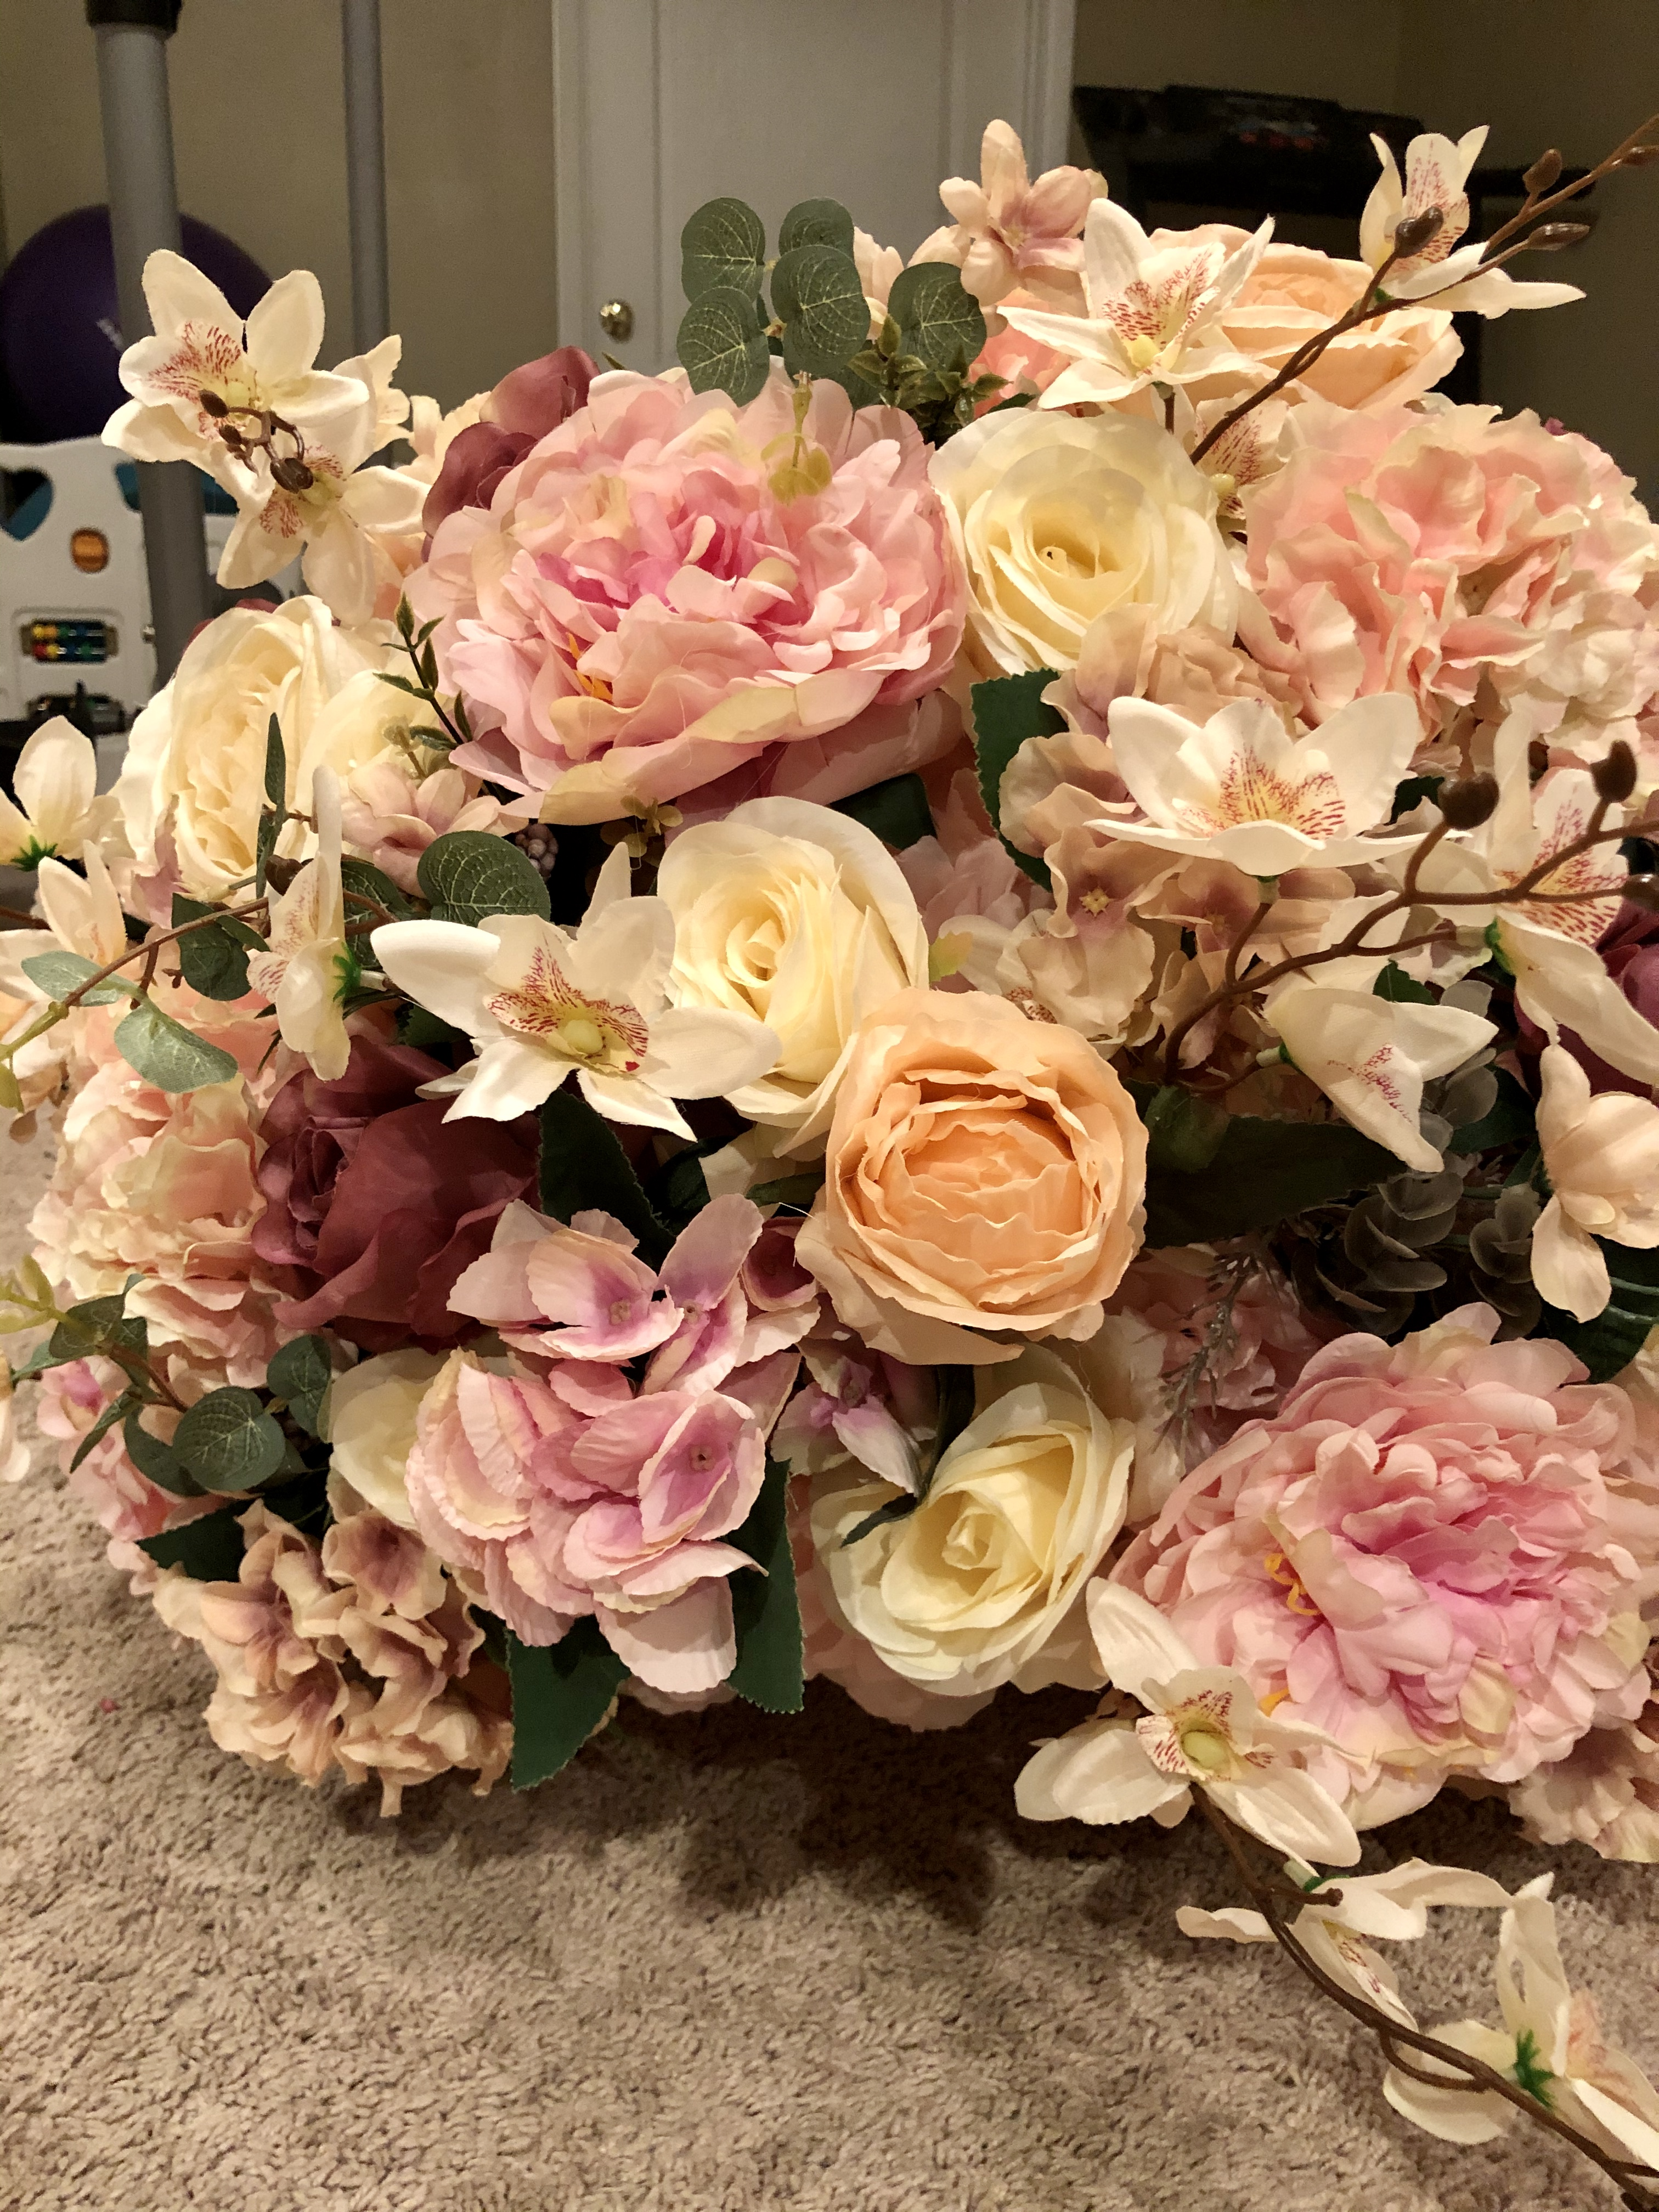 Big Faux Flower Centerpiece With Pink And Champion Garden Roses And Other Flowers